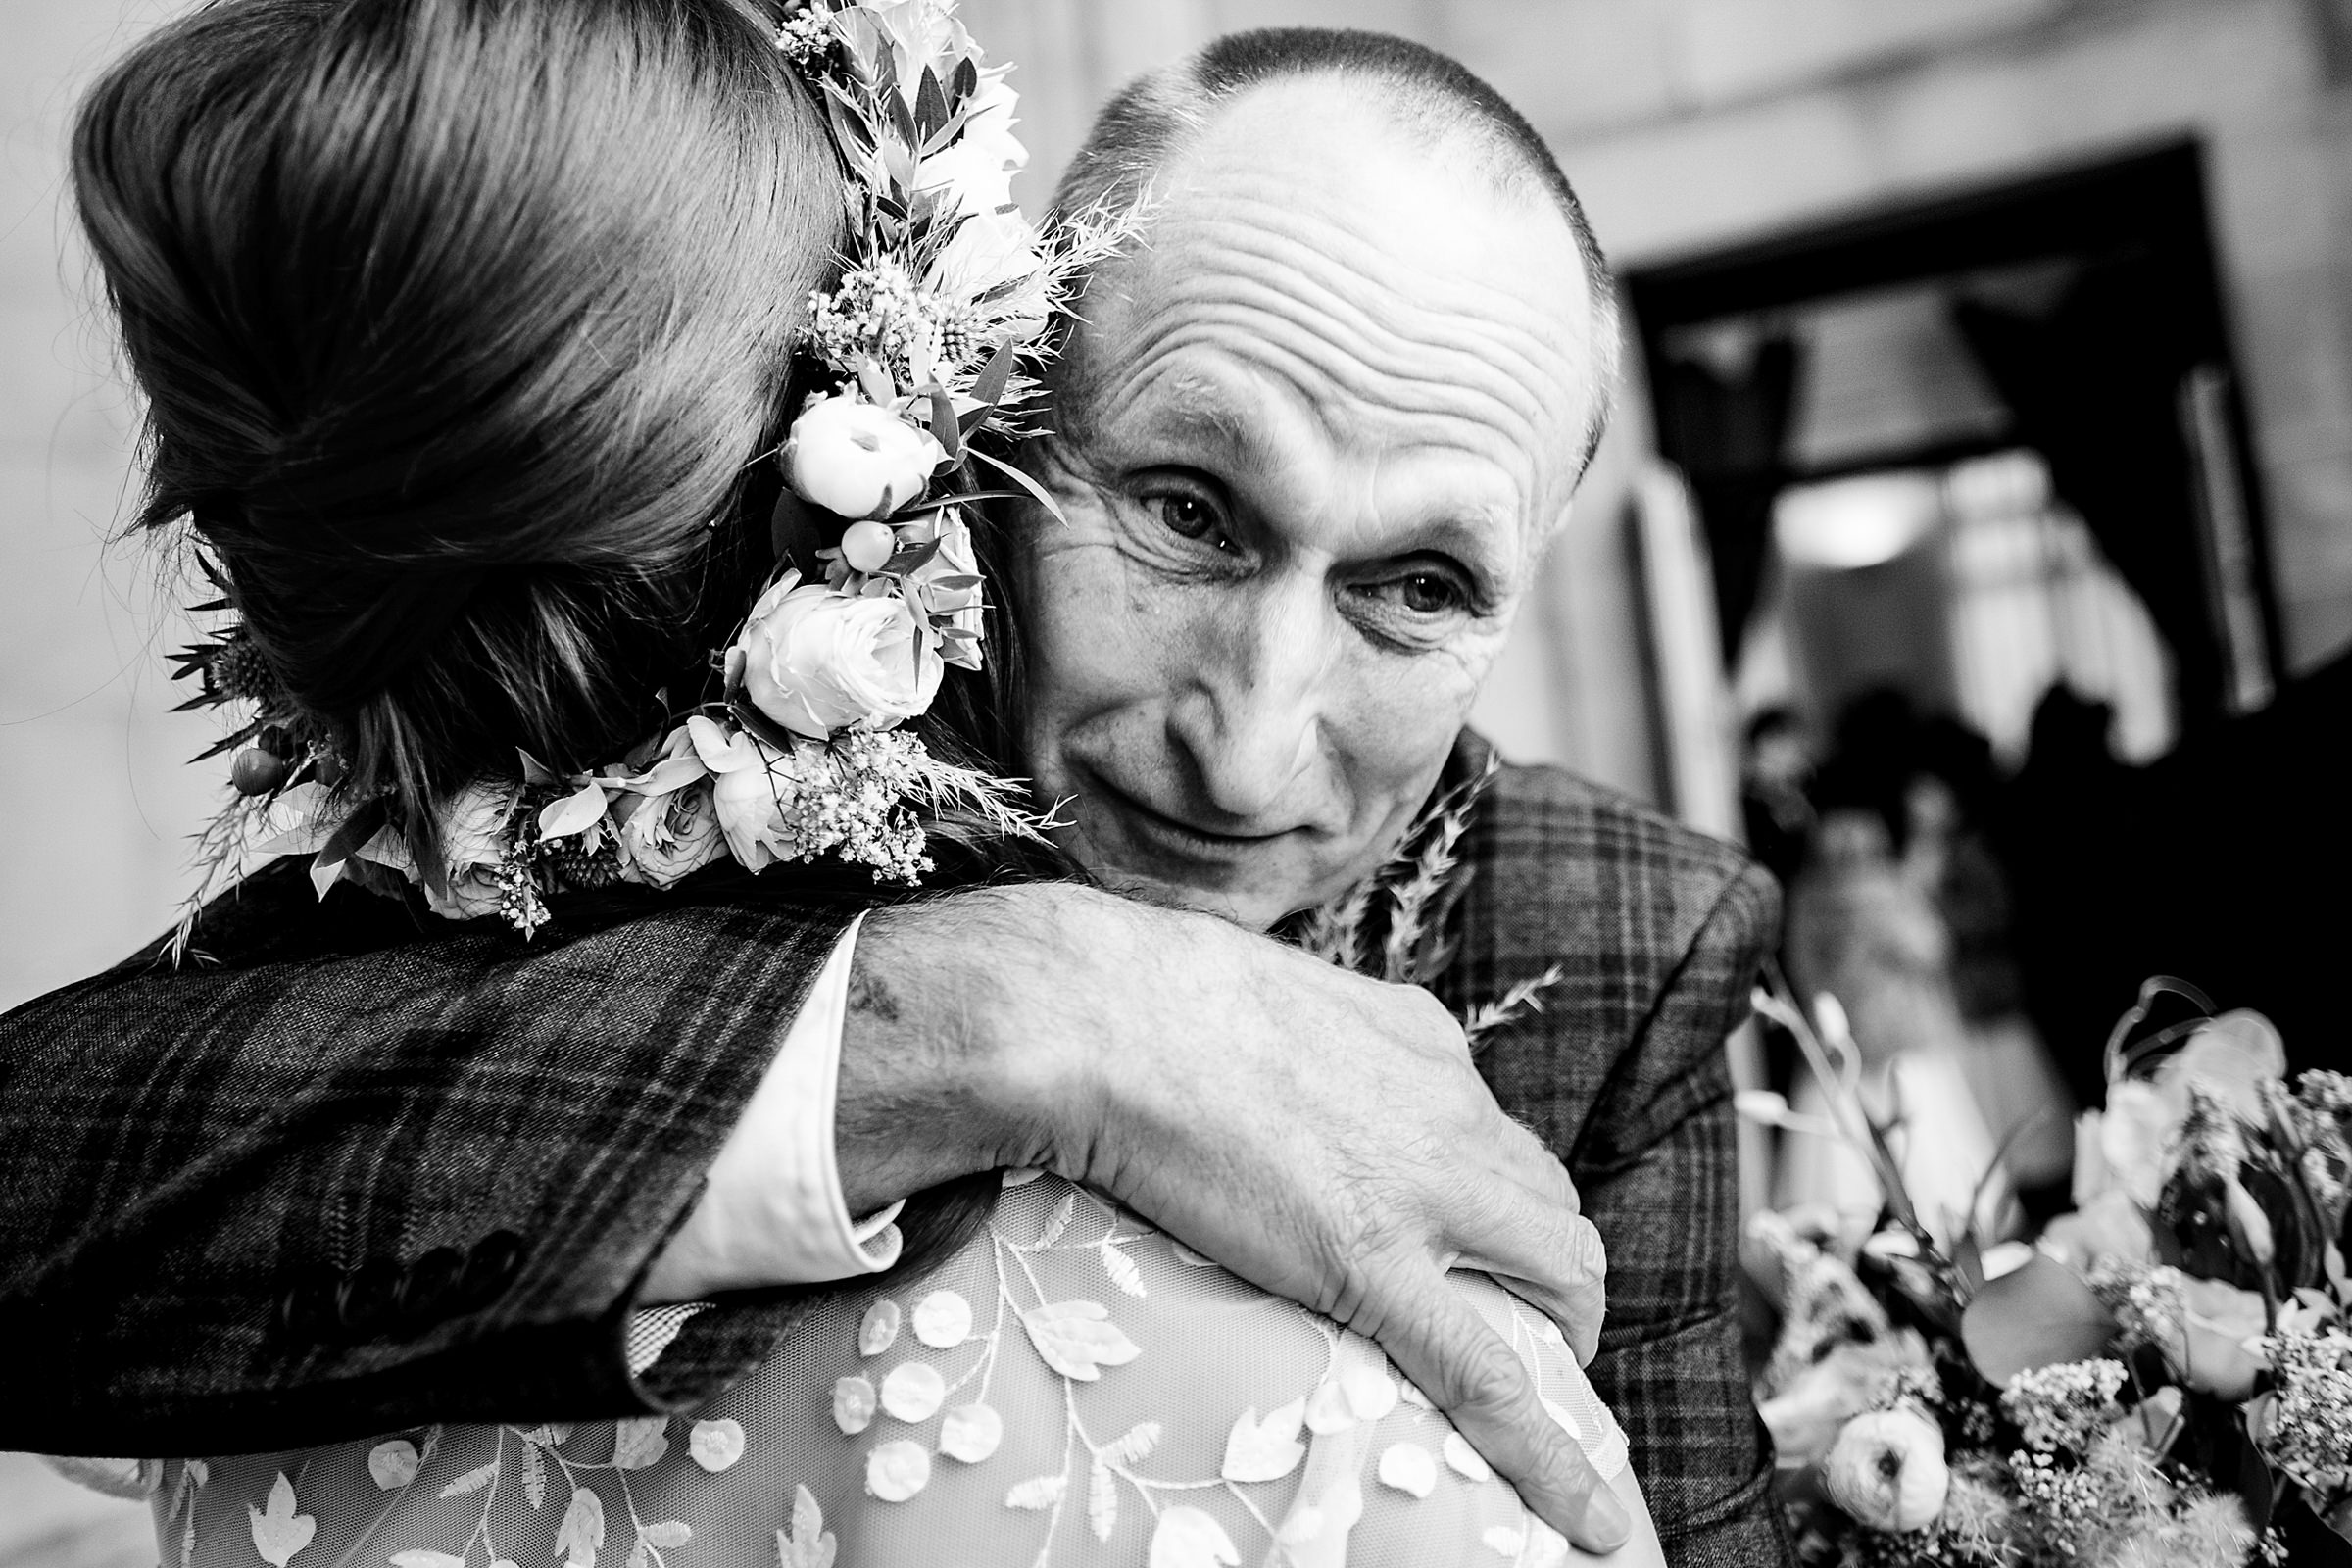 Groom in plaid suit hugs his bride wearing floral wreath - photo by Emma + Rich